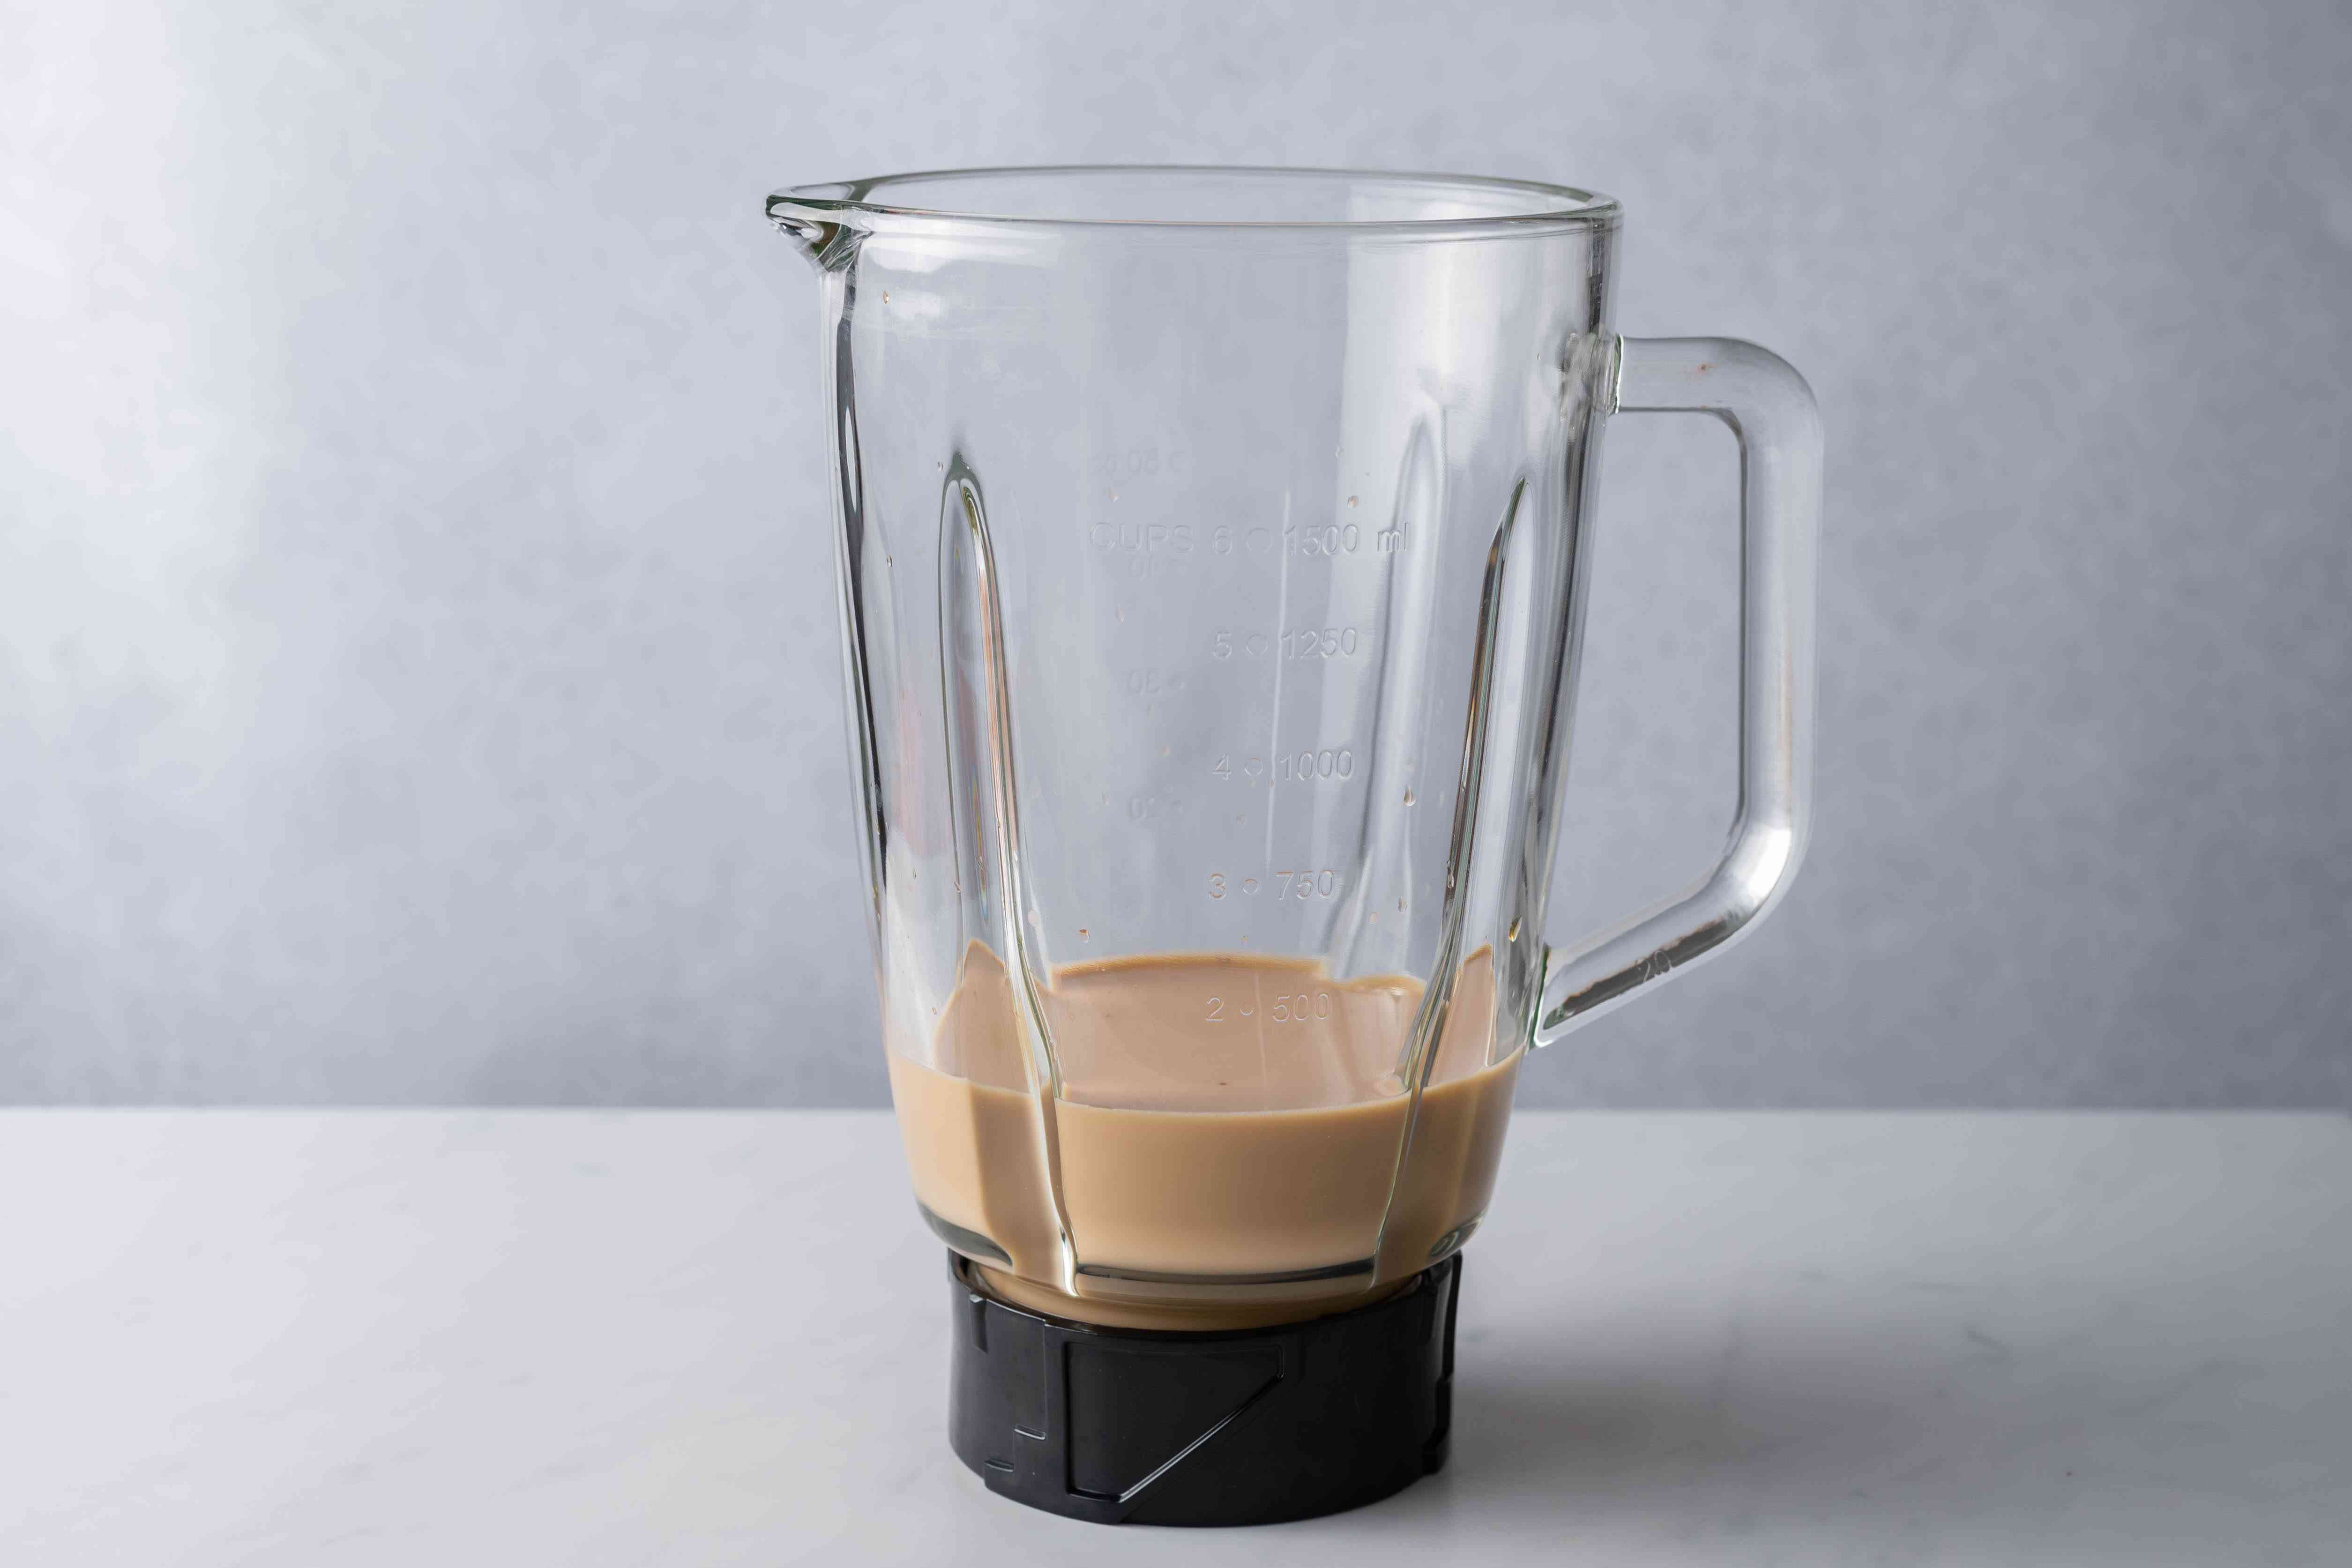 whole milk, strong coffee, and chocolate syrup in a blender